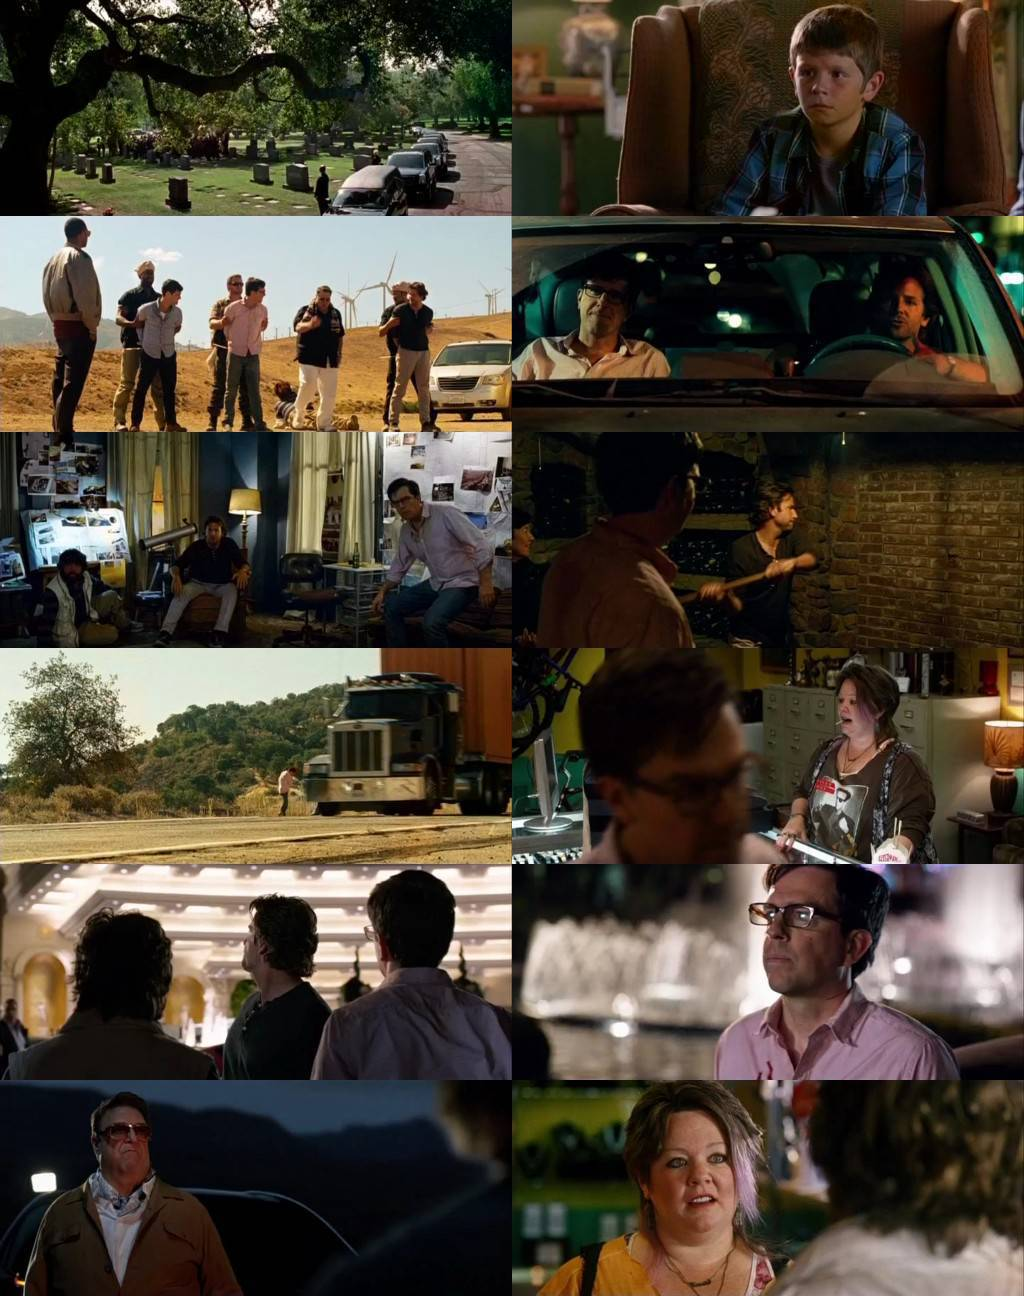 Download The Hangover Part III (2013) DVDRip x264-SSDD 400MB